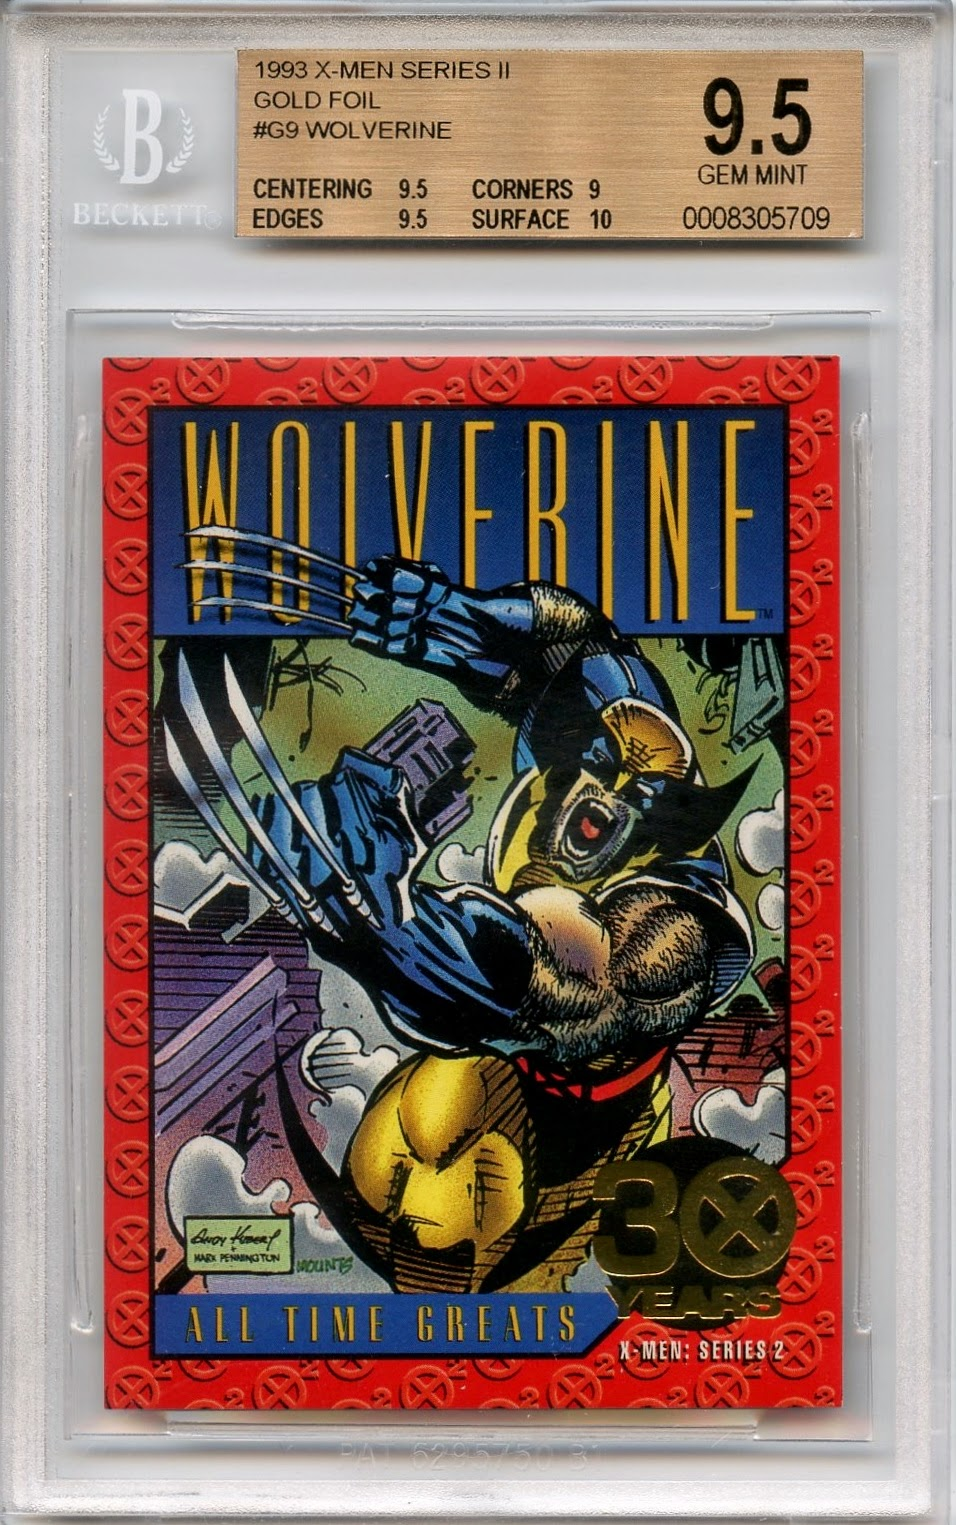 87a417869d8 ... 2-3 per box. I sold two Wolverine BGS 9.5 s - one about two years and  another just this last month. Below is a picture of the card from the  latest sale.